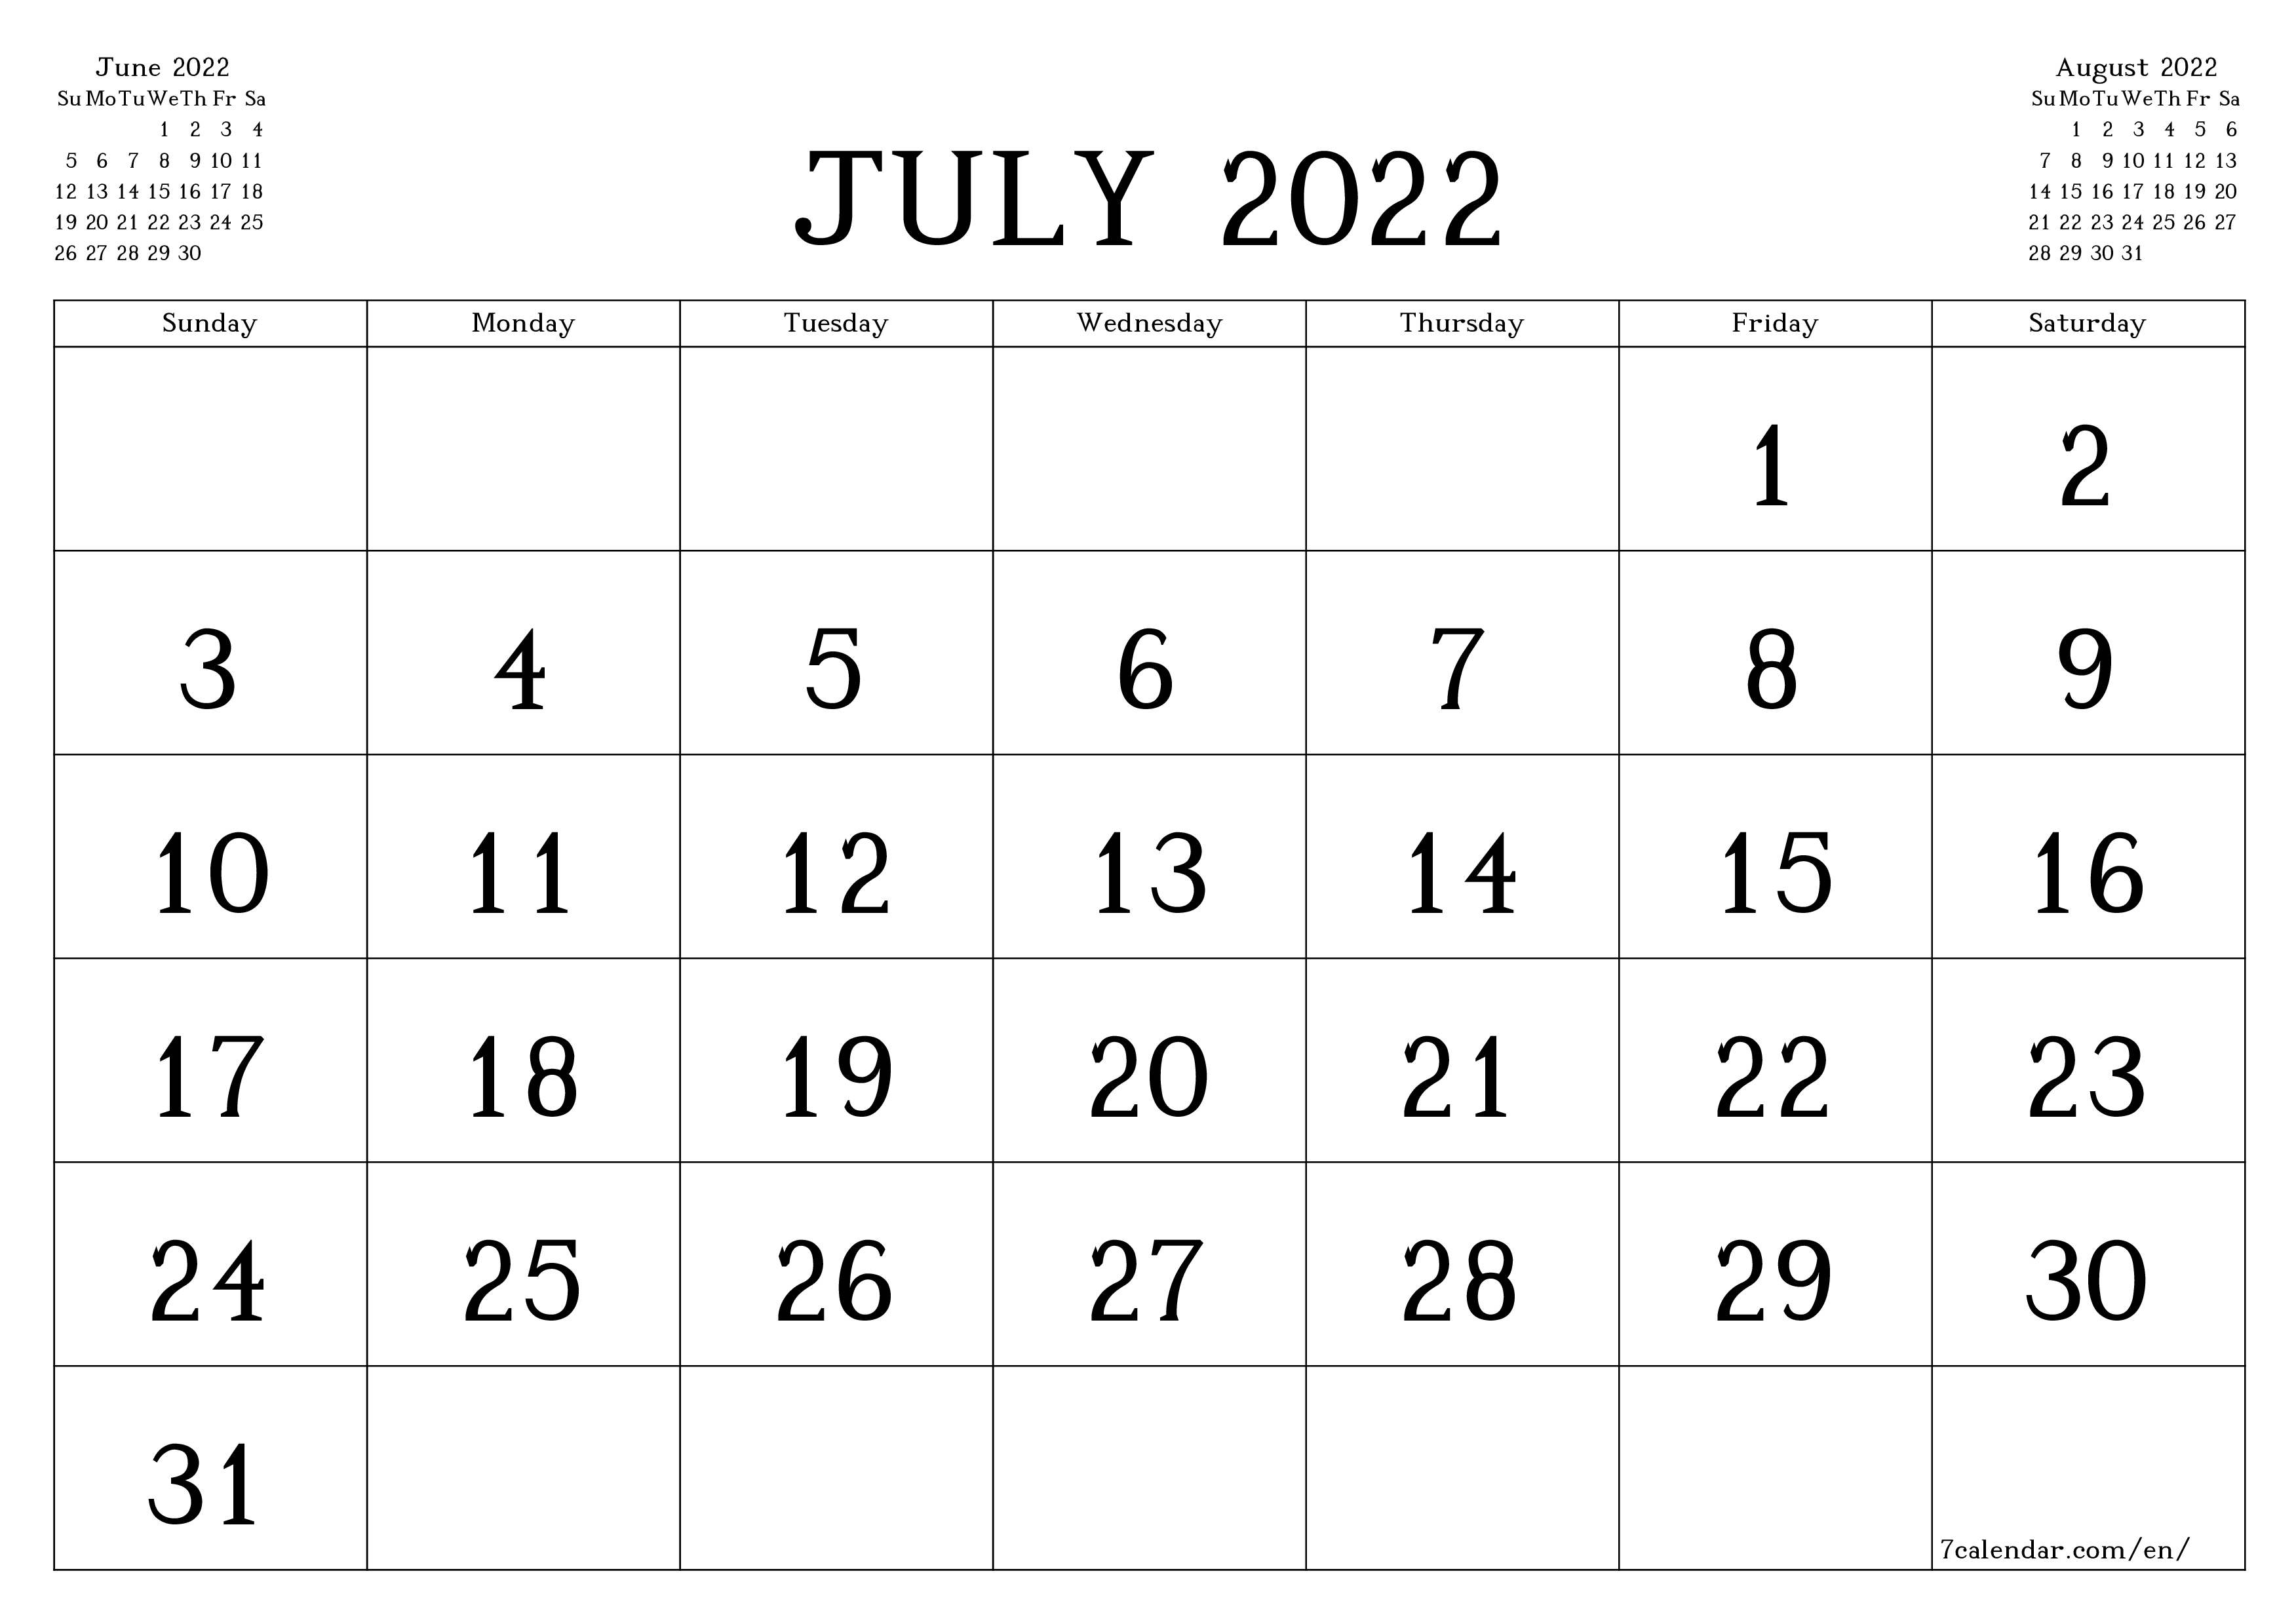 Blank monthly calendar for month July 2022 save and print to PDF  - 7calendar.com